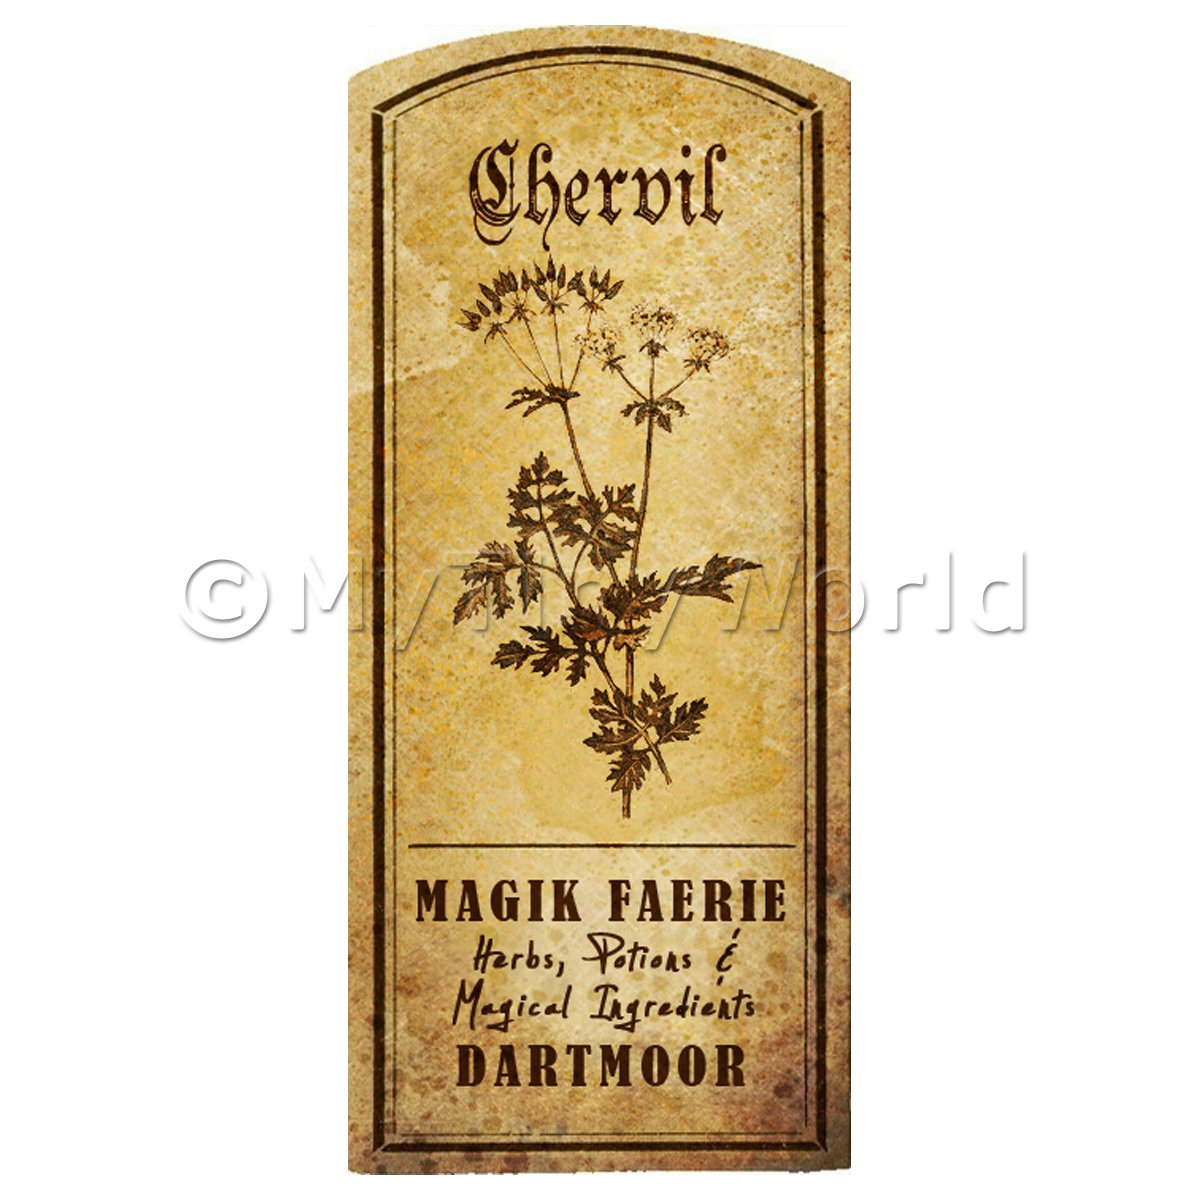 Dolls House Herbalist/Apothecary Chervil Herb Short Sepia Label